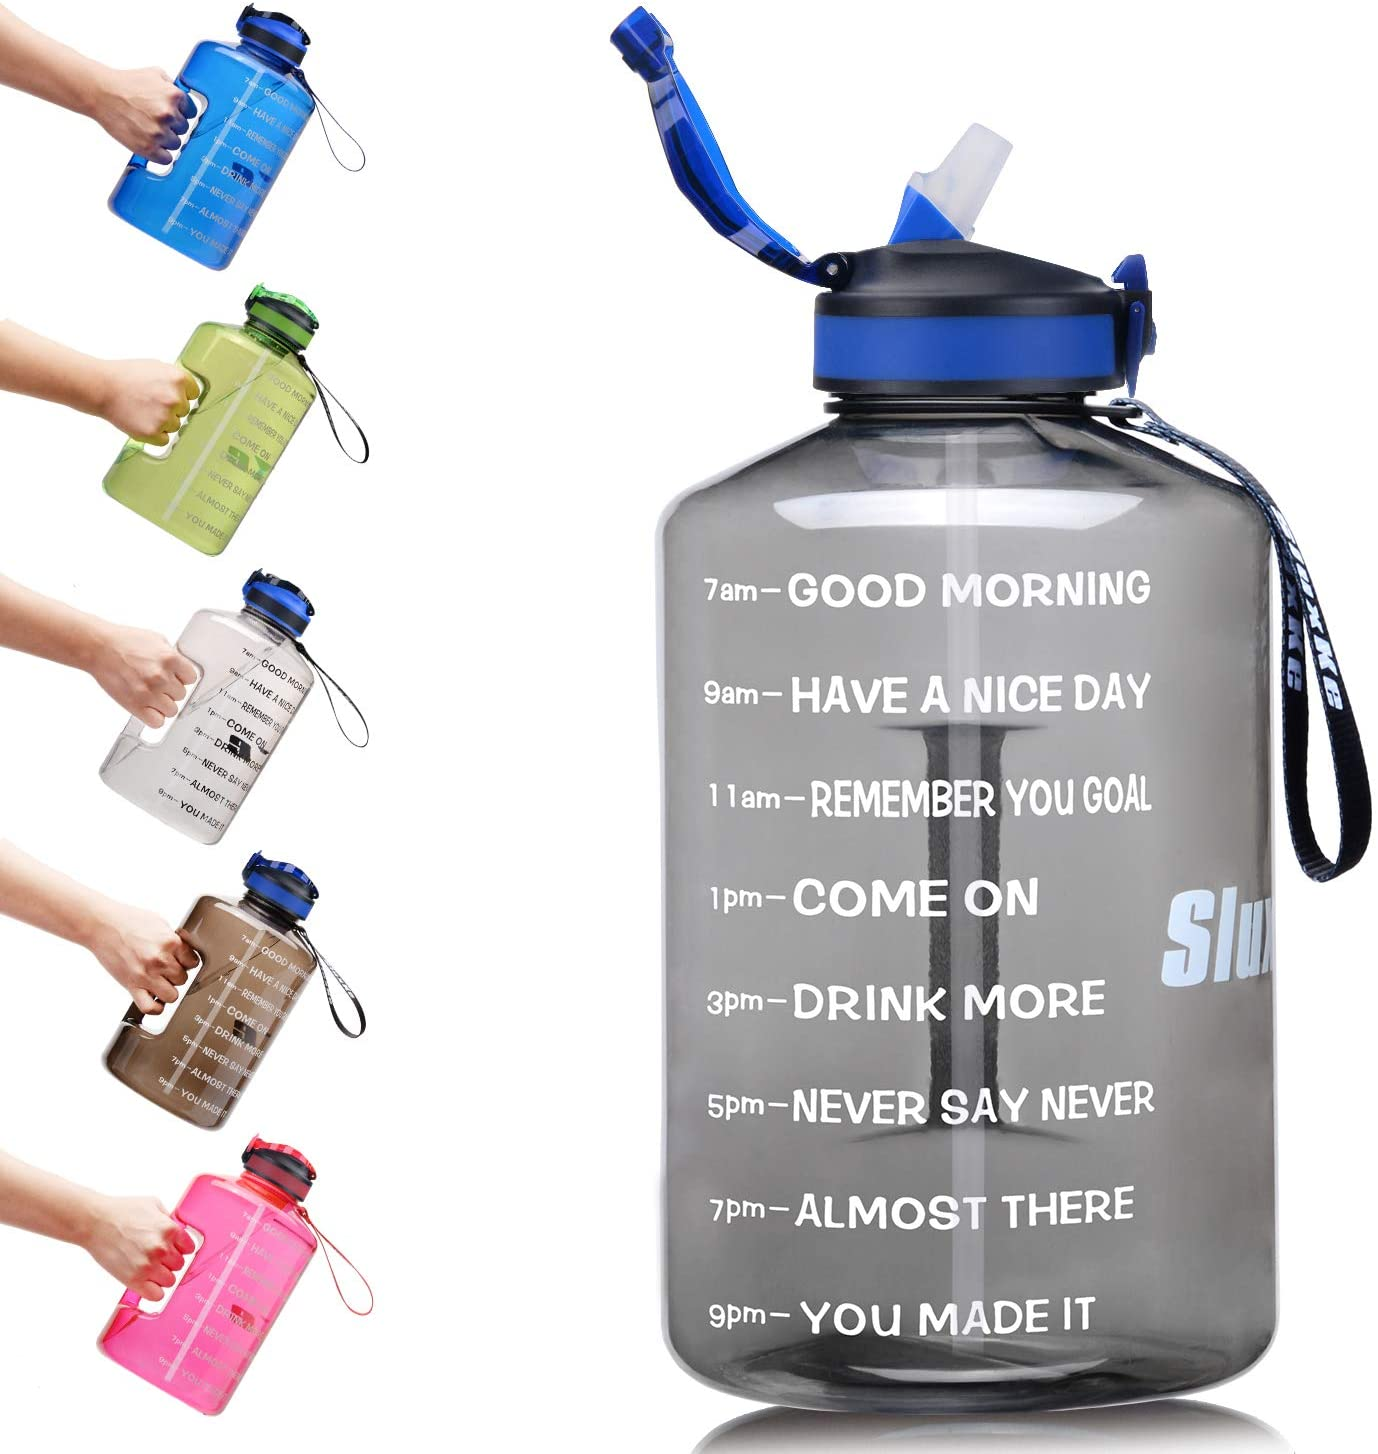 SLUXKE 1 Gallon Water Bottle with Straw and Motivational Time Marker, Large 128OZ Silicone Straw Water Bottle BPA Free Fitness Sports Water Jug to Ensure You Drink Enough Water Throughout The Day